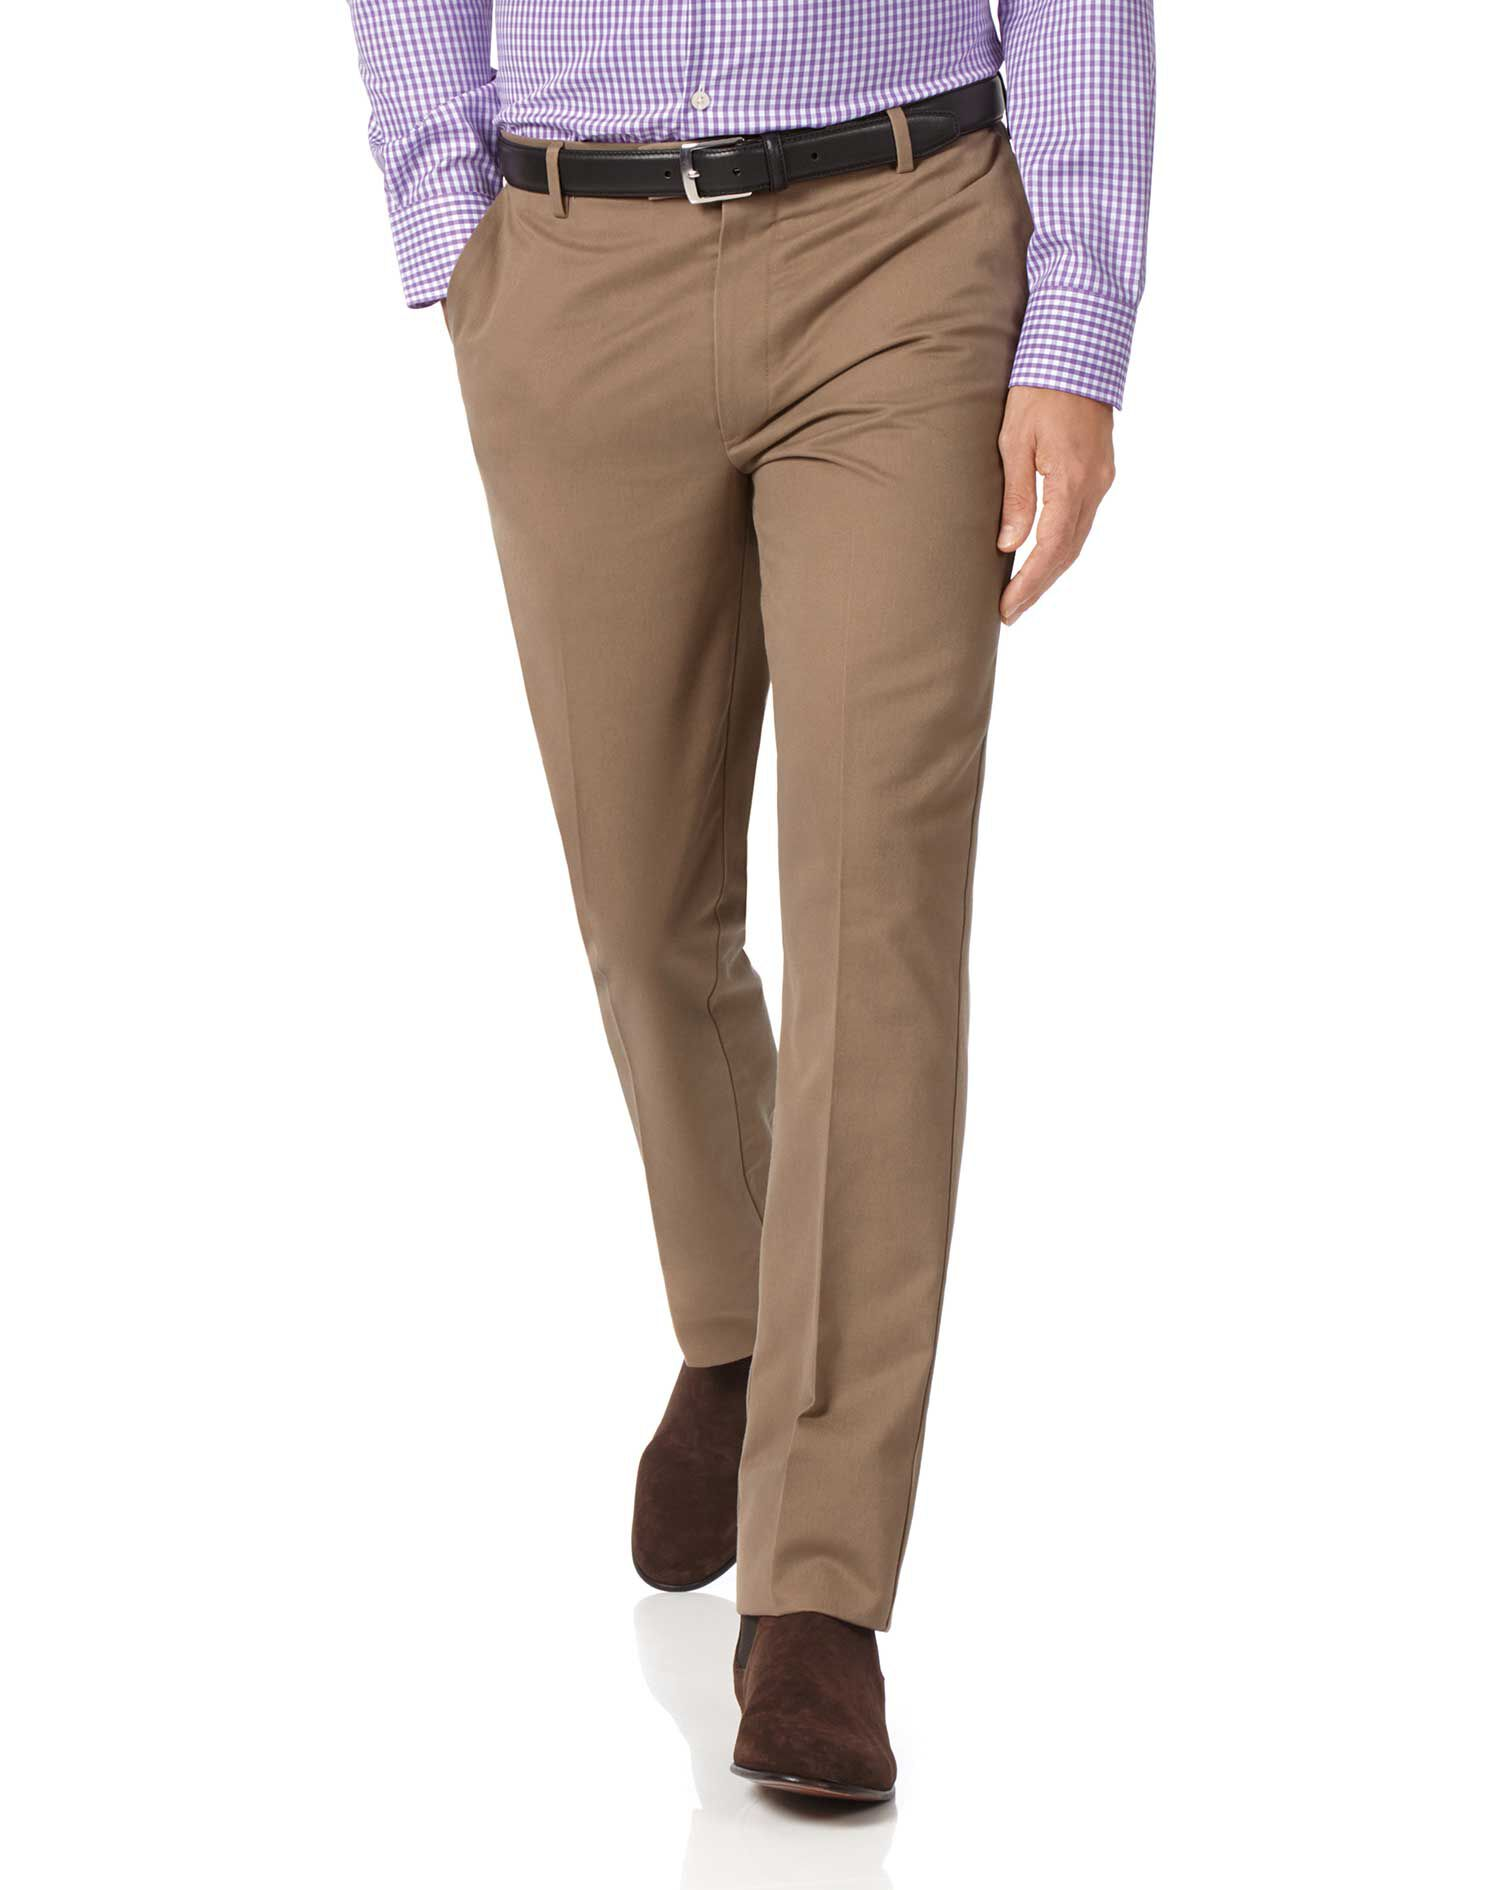 Tan Extra Slim Fit Flat Front Non-Iron Cotton Chino Trousers Size W38 L34 by Charles Tyrwhitt